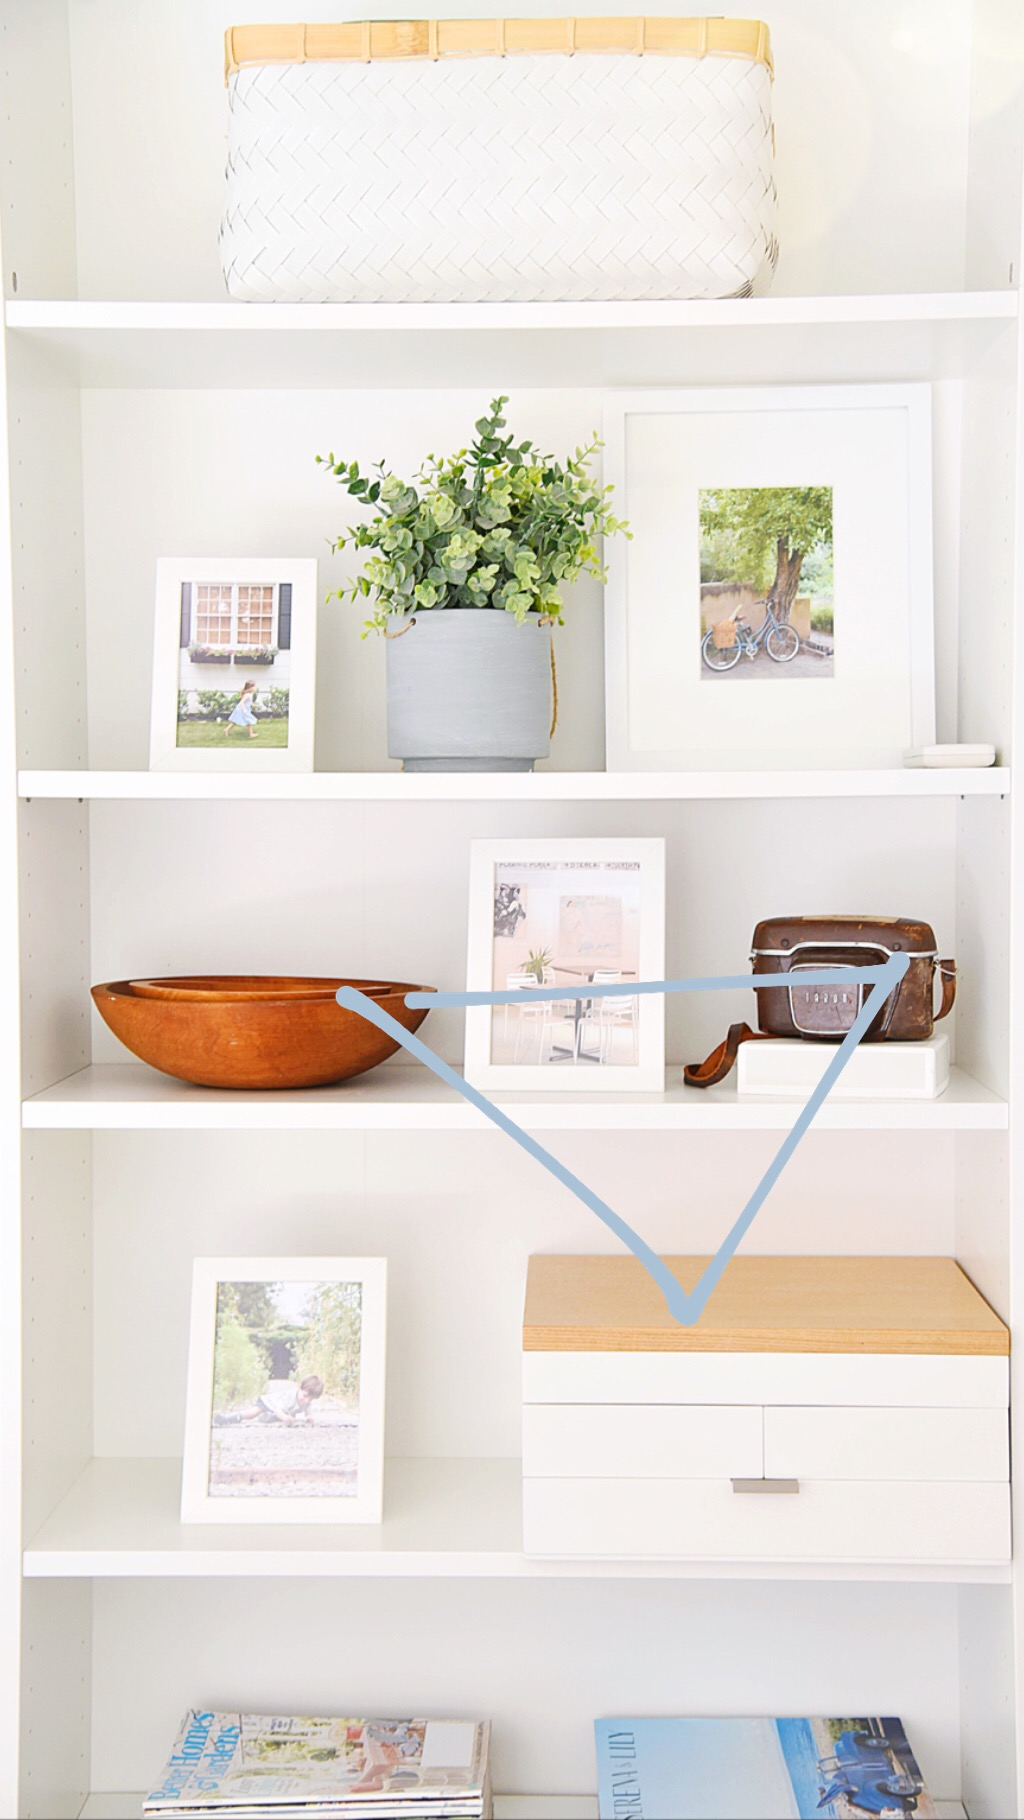 - These wood / brown tones, are displayed in a triangle pattern to distribute the visual weight on these shelves.